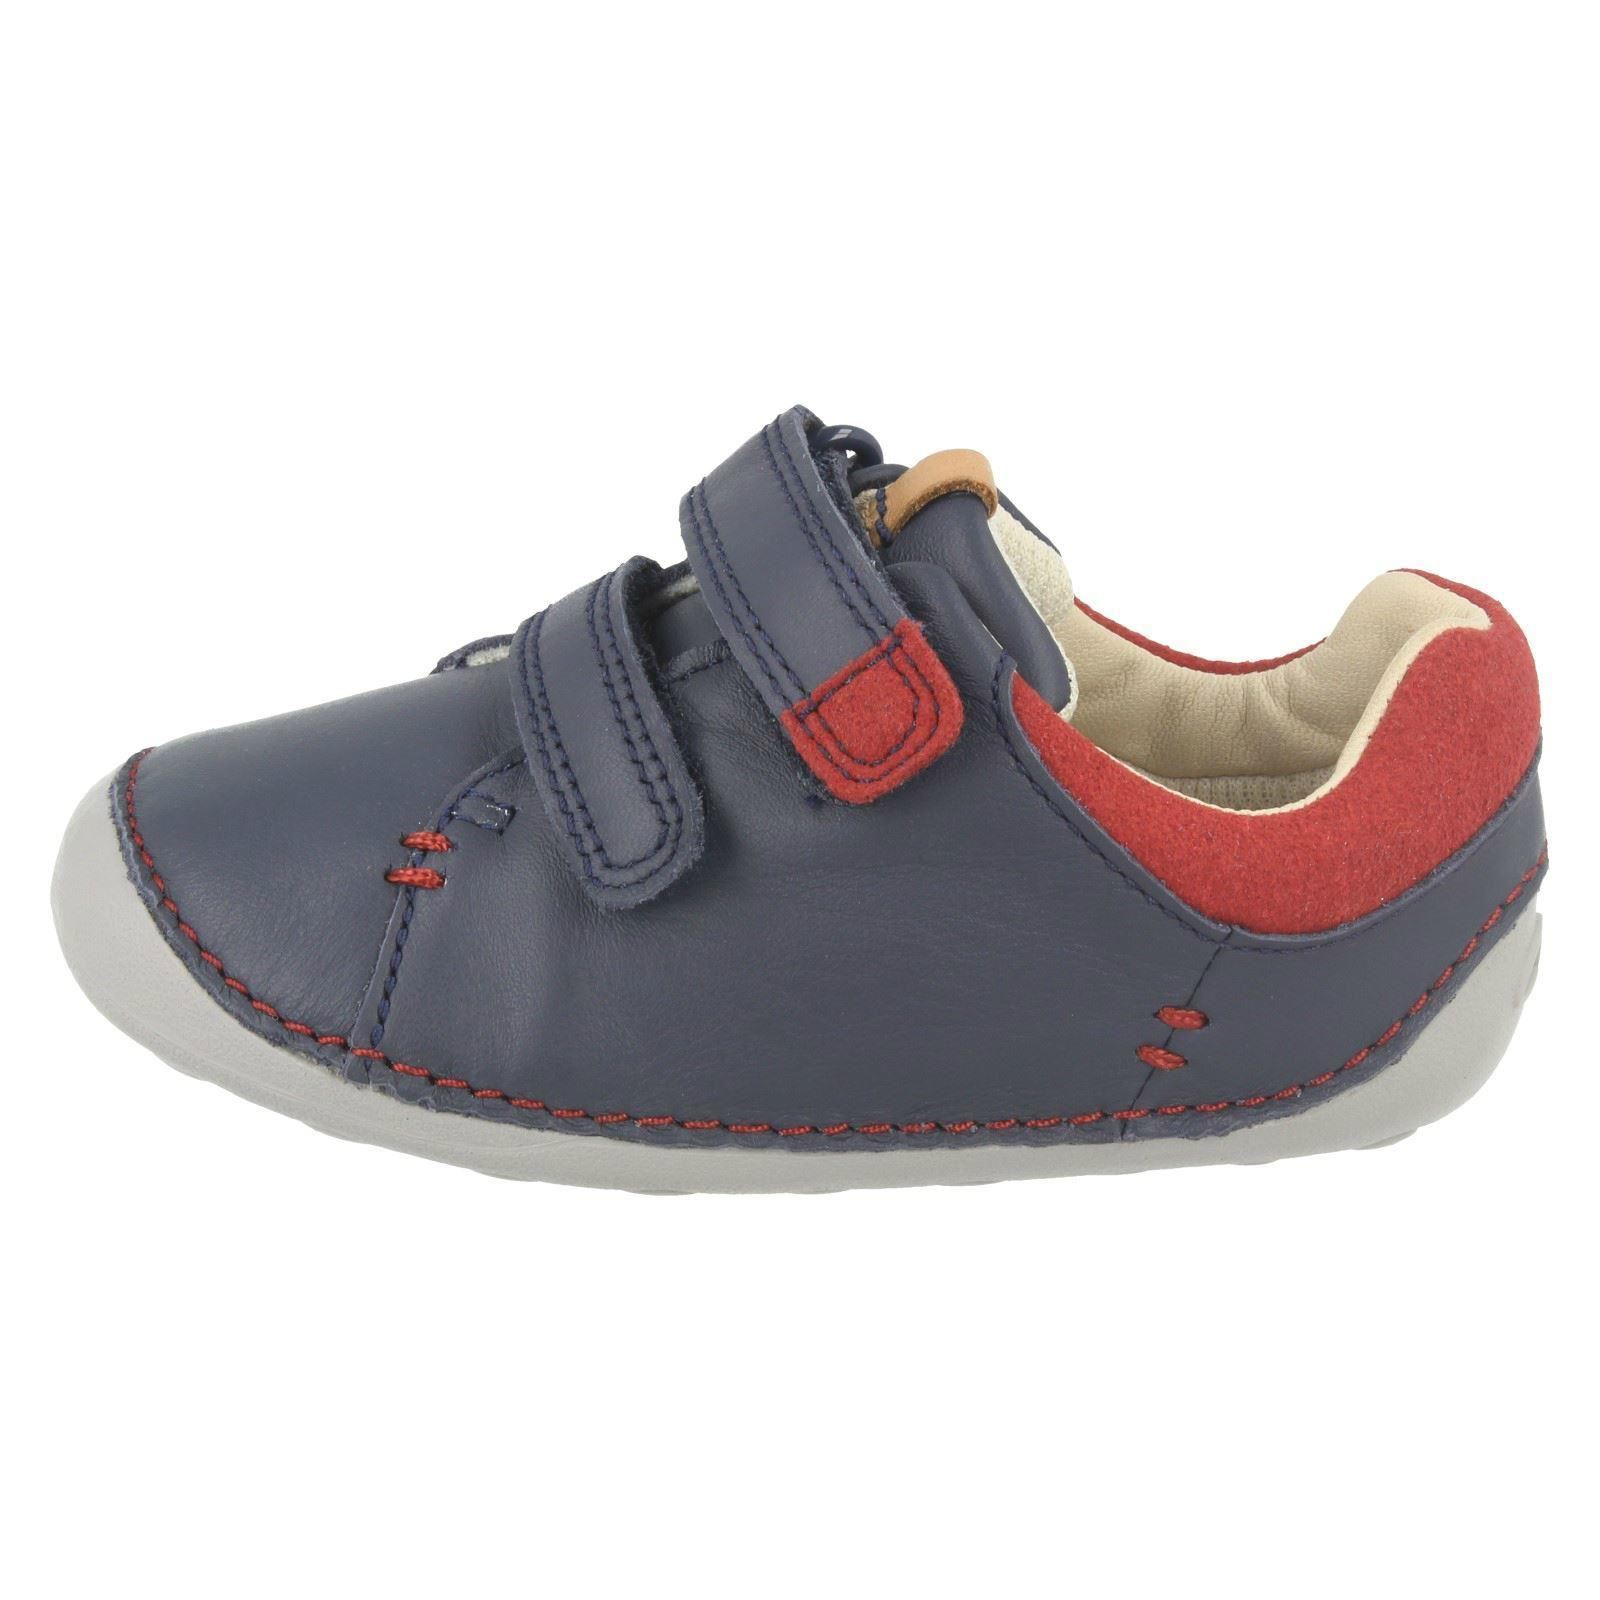 Boys Clarks Toddler Baby Frist Shoes Tiny Toby